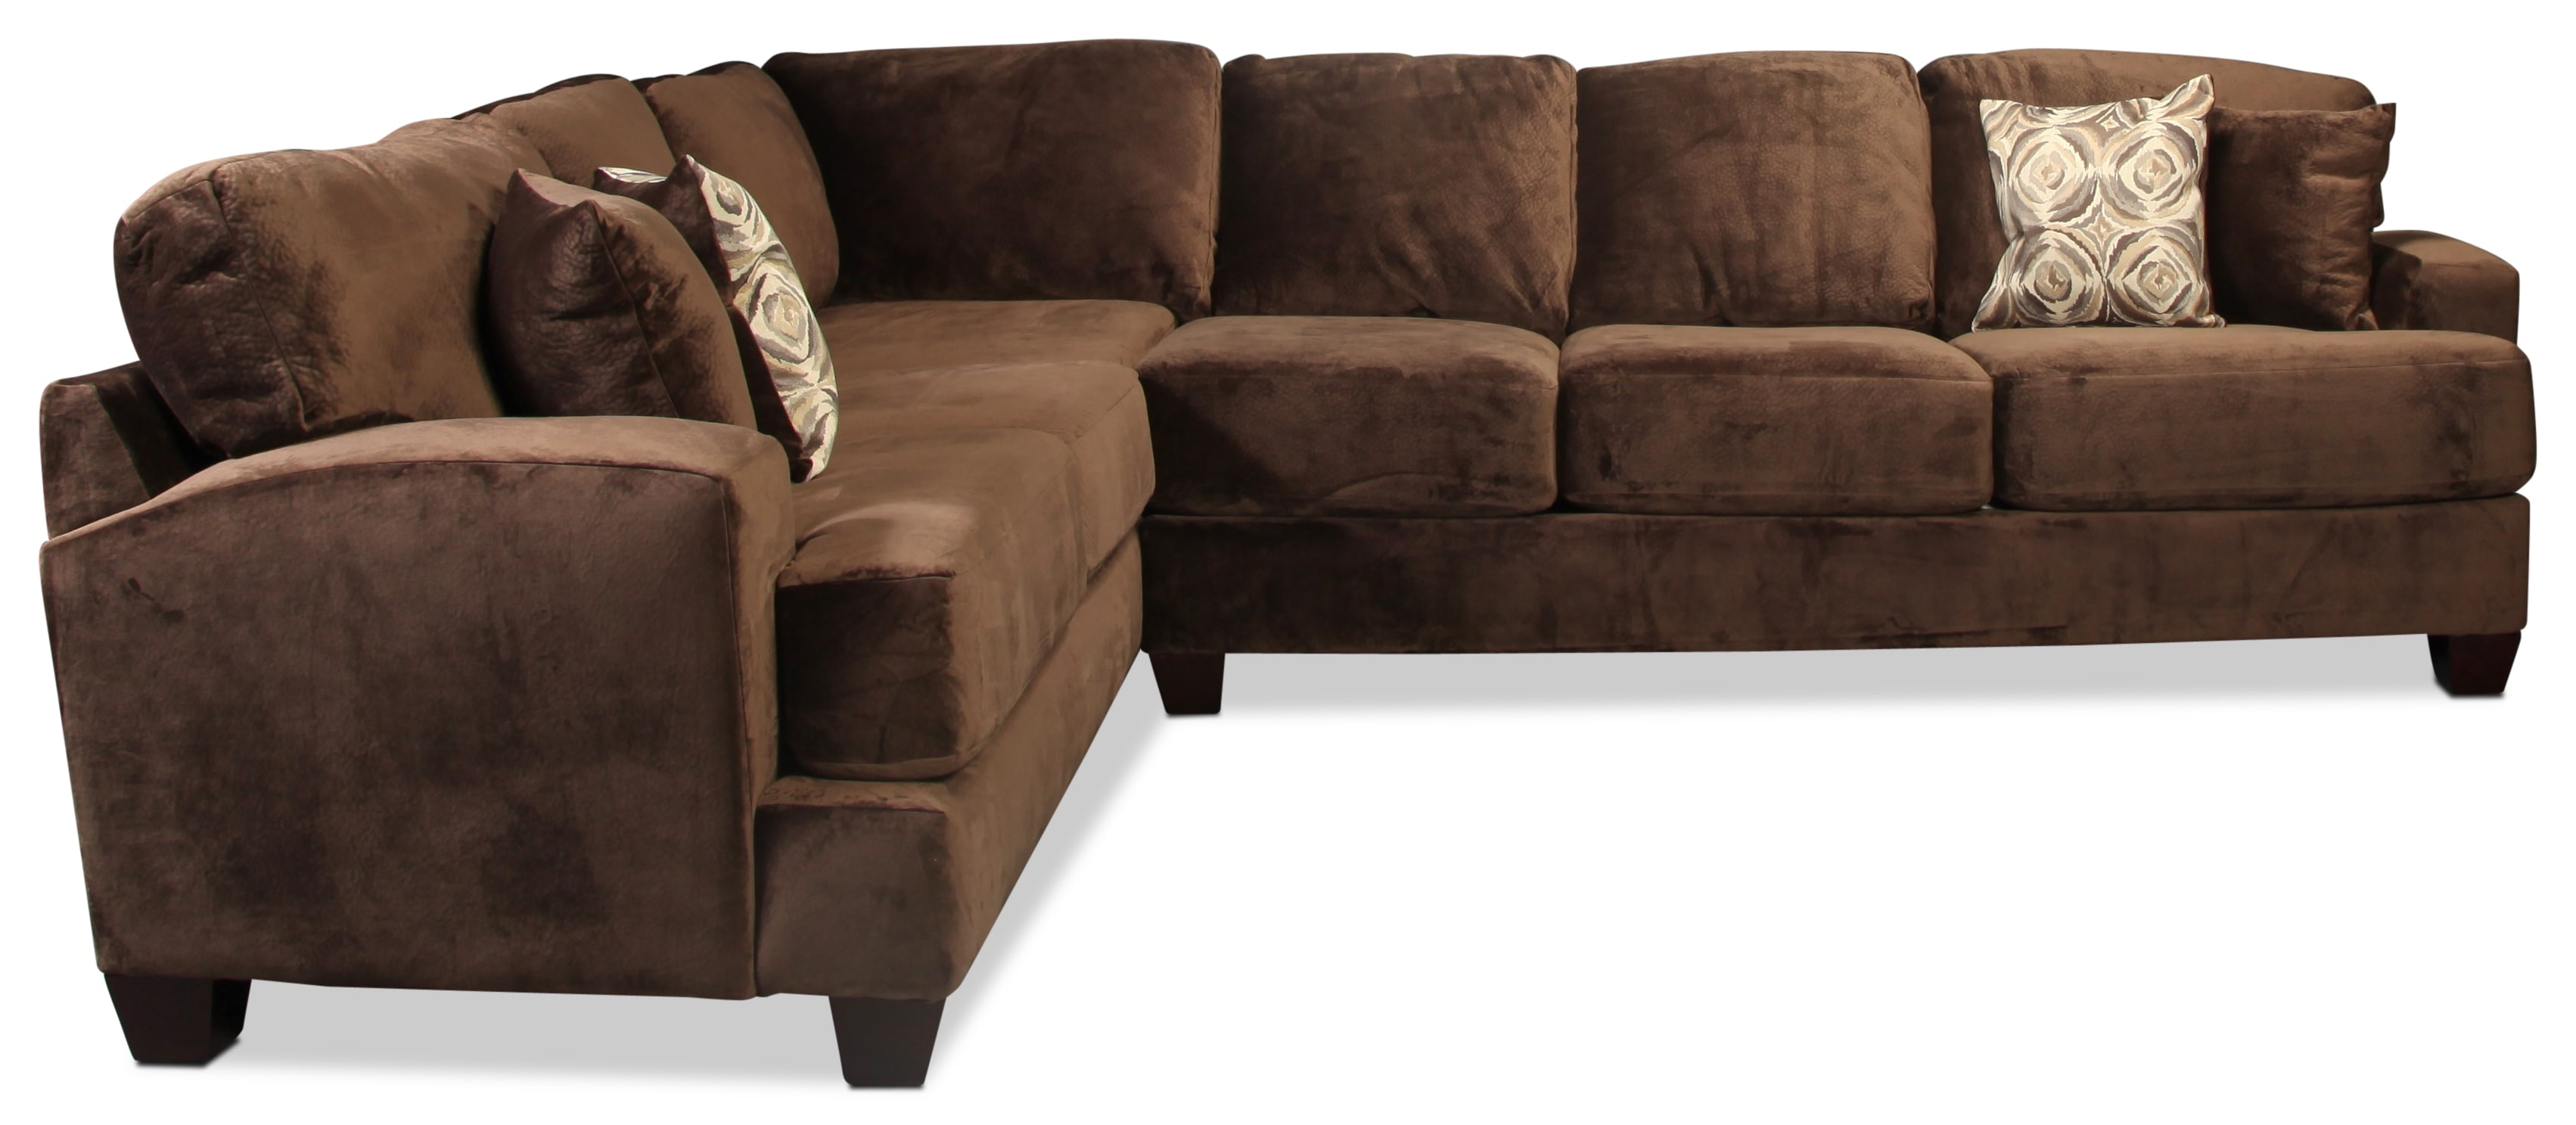 Montclaire 2 Piece Sectional - Chocolate